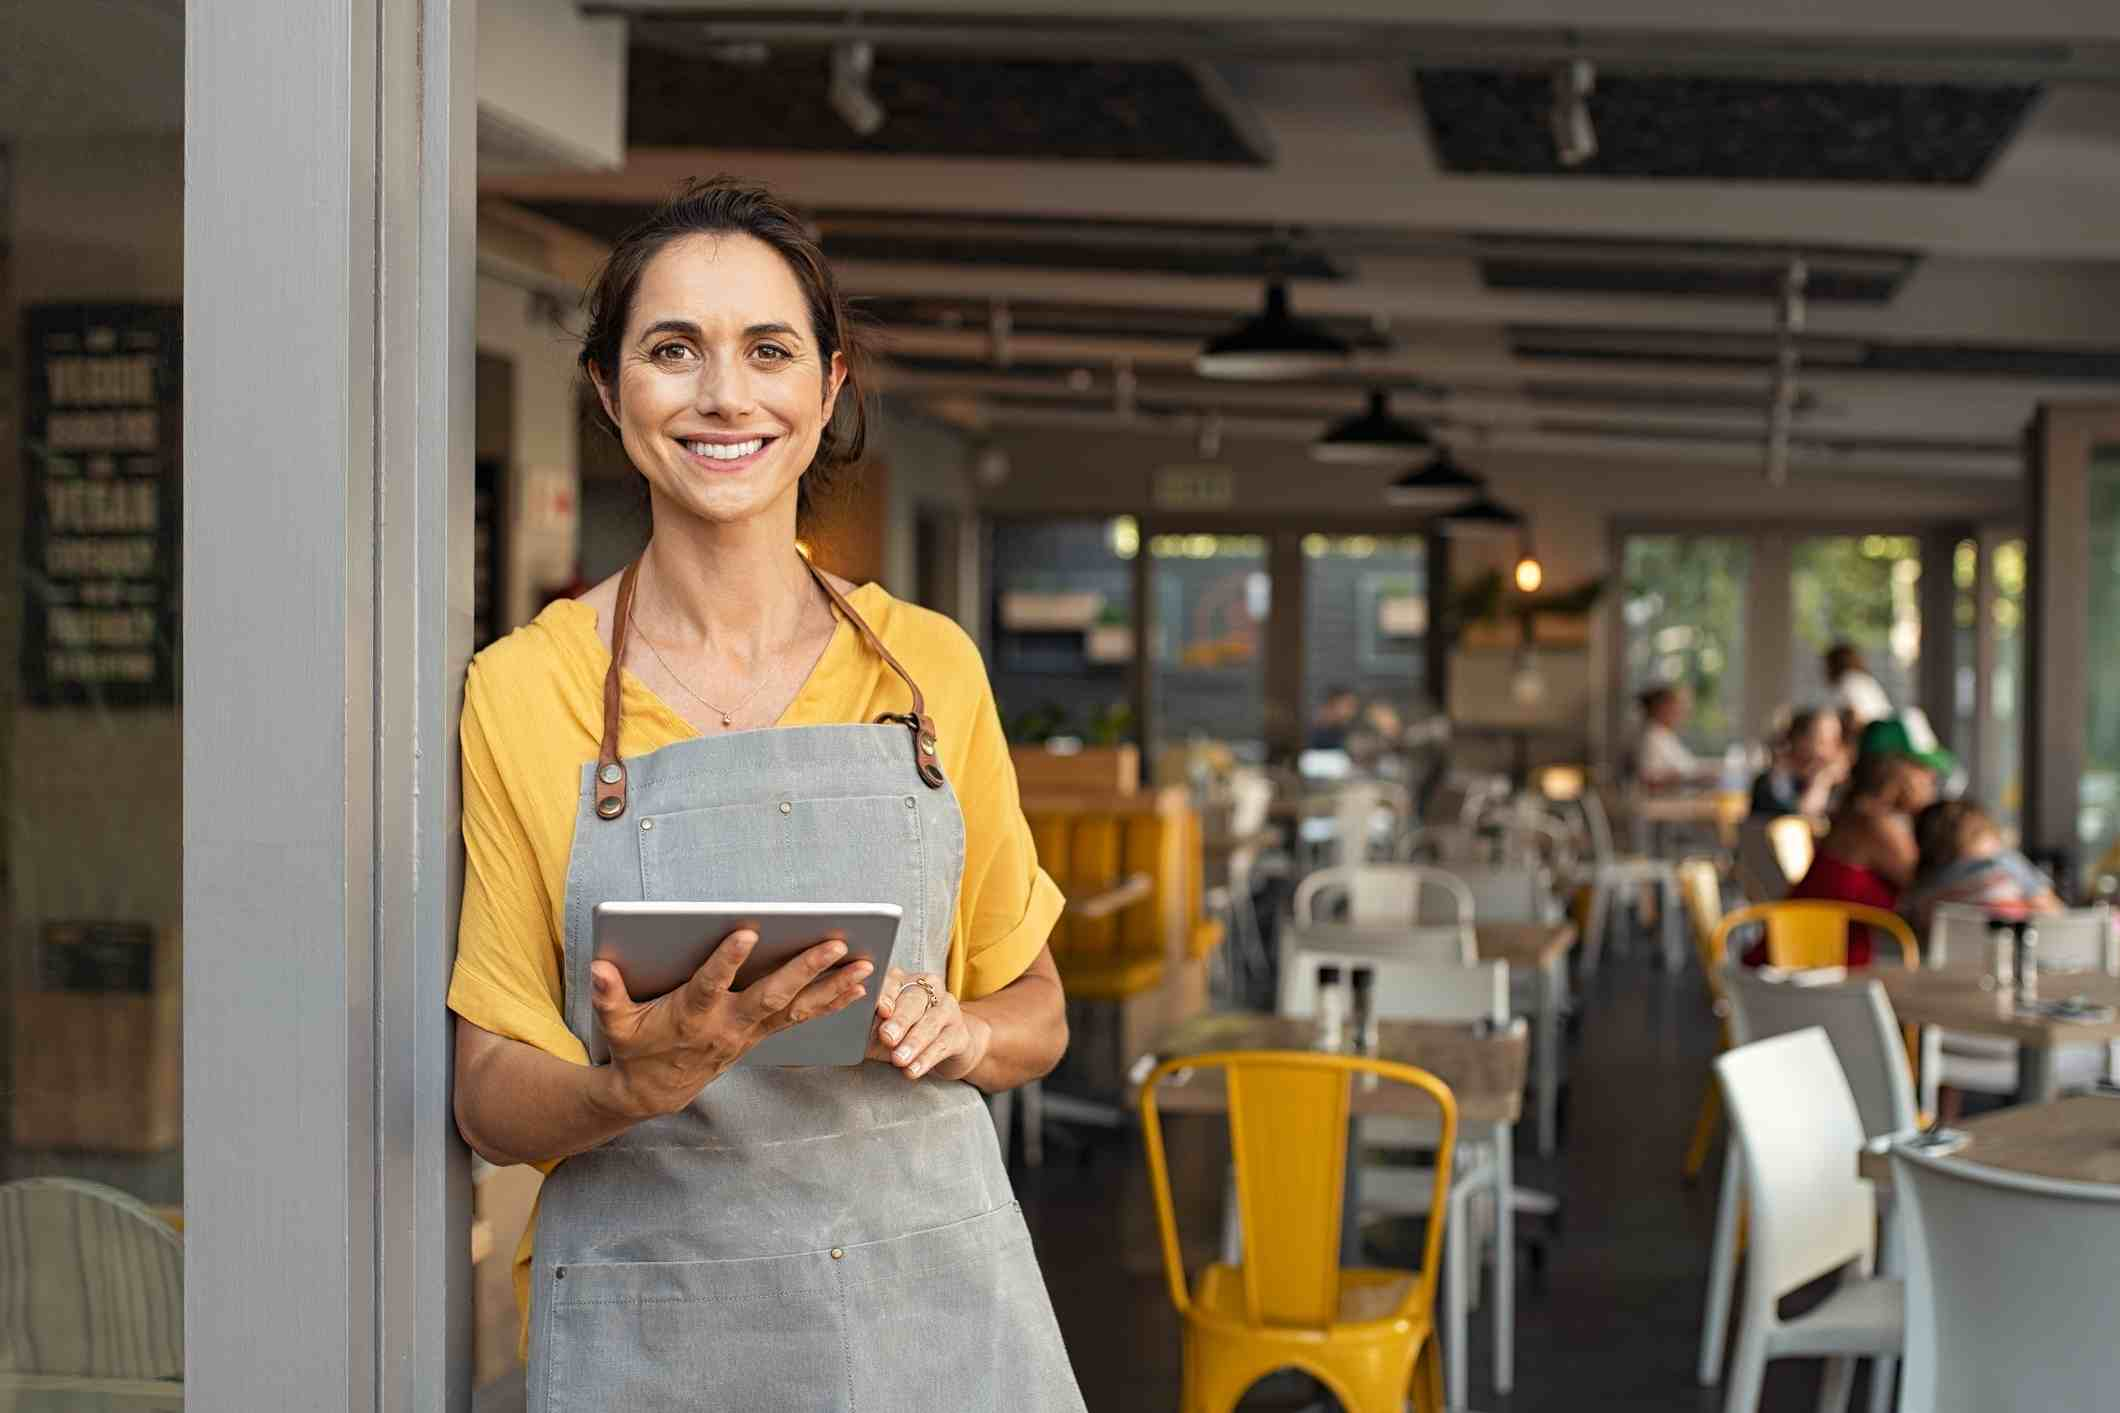 Case Study: How franchisors create digital marketing programs that fit the local market